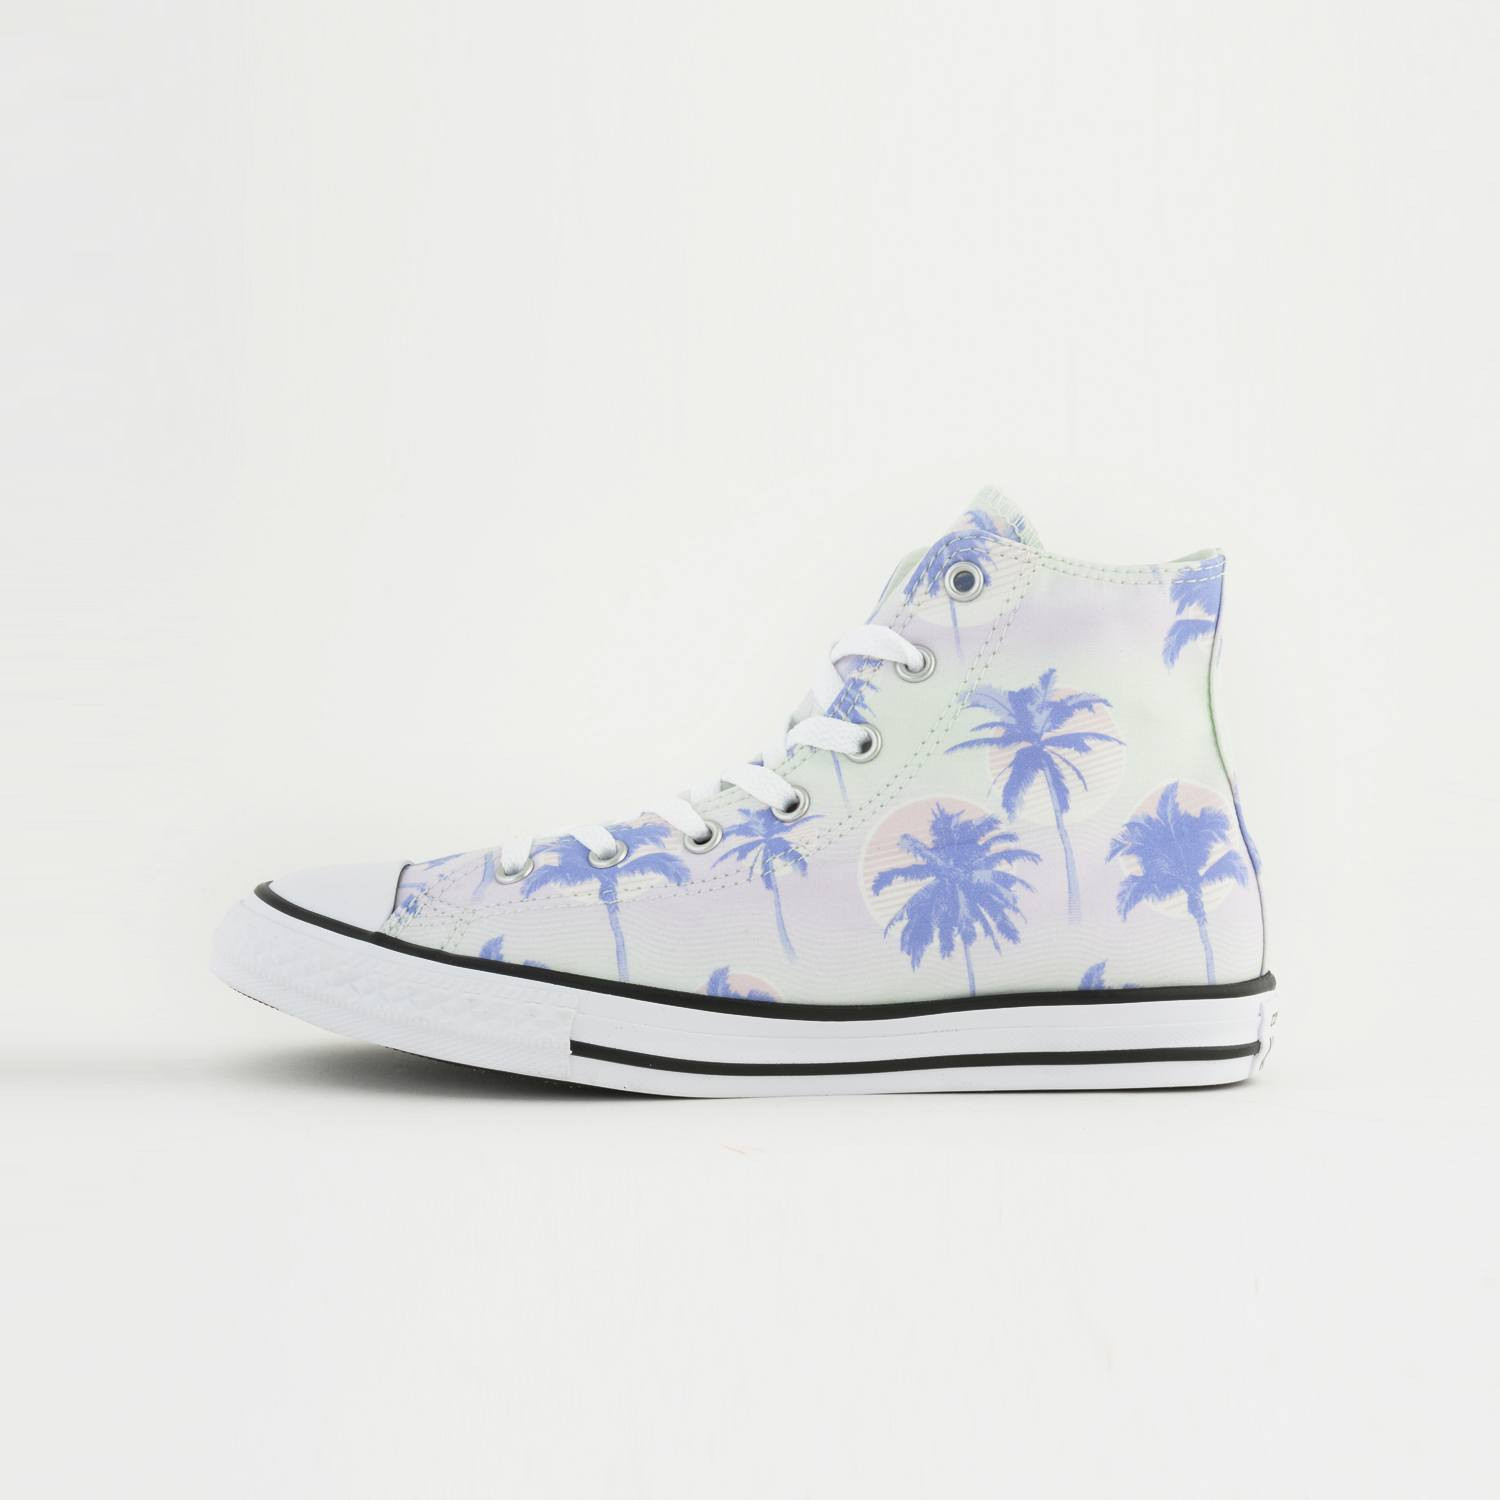 Converse Chuck Taylor All Star Palm Trees | Παιδικά Παπούτσια (9000005688_32643)